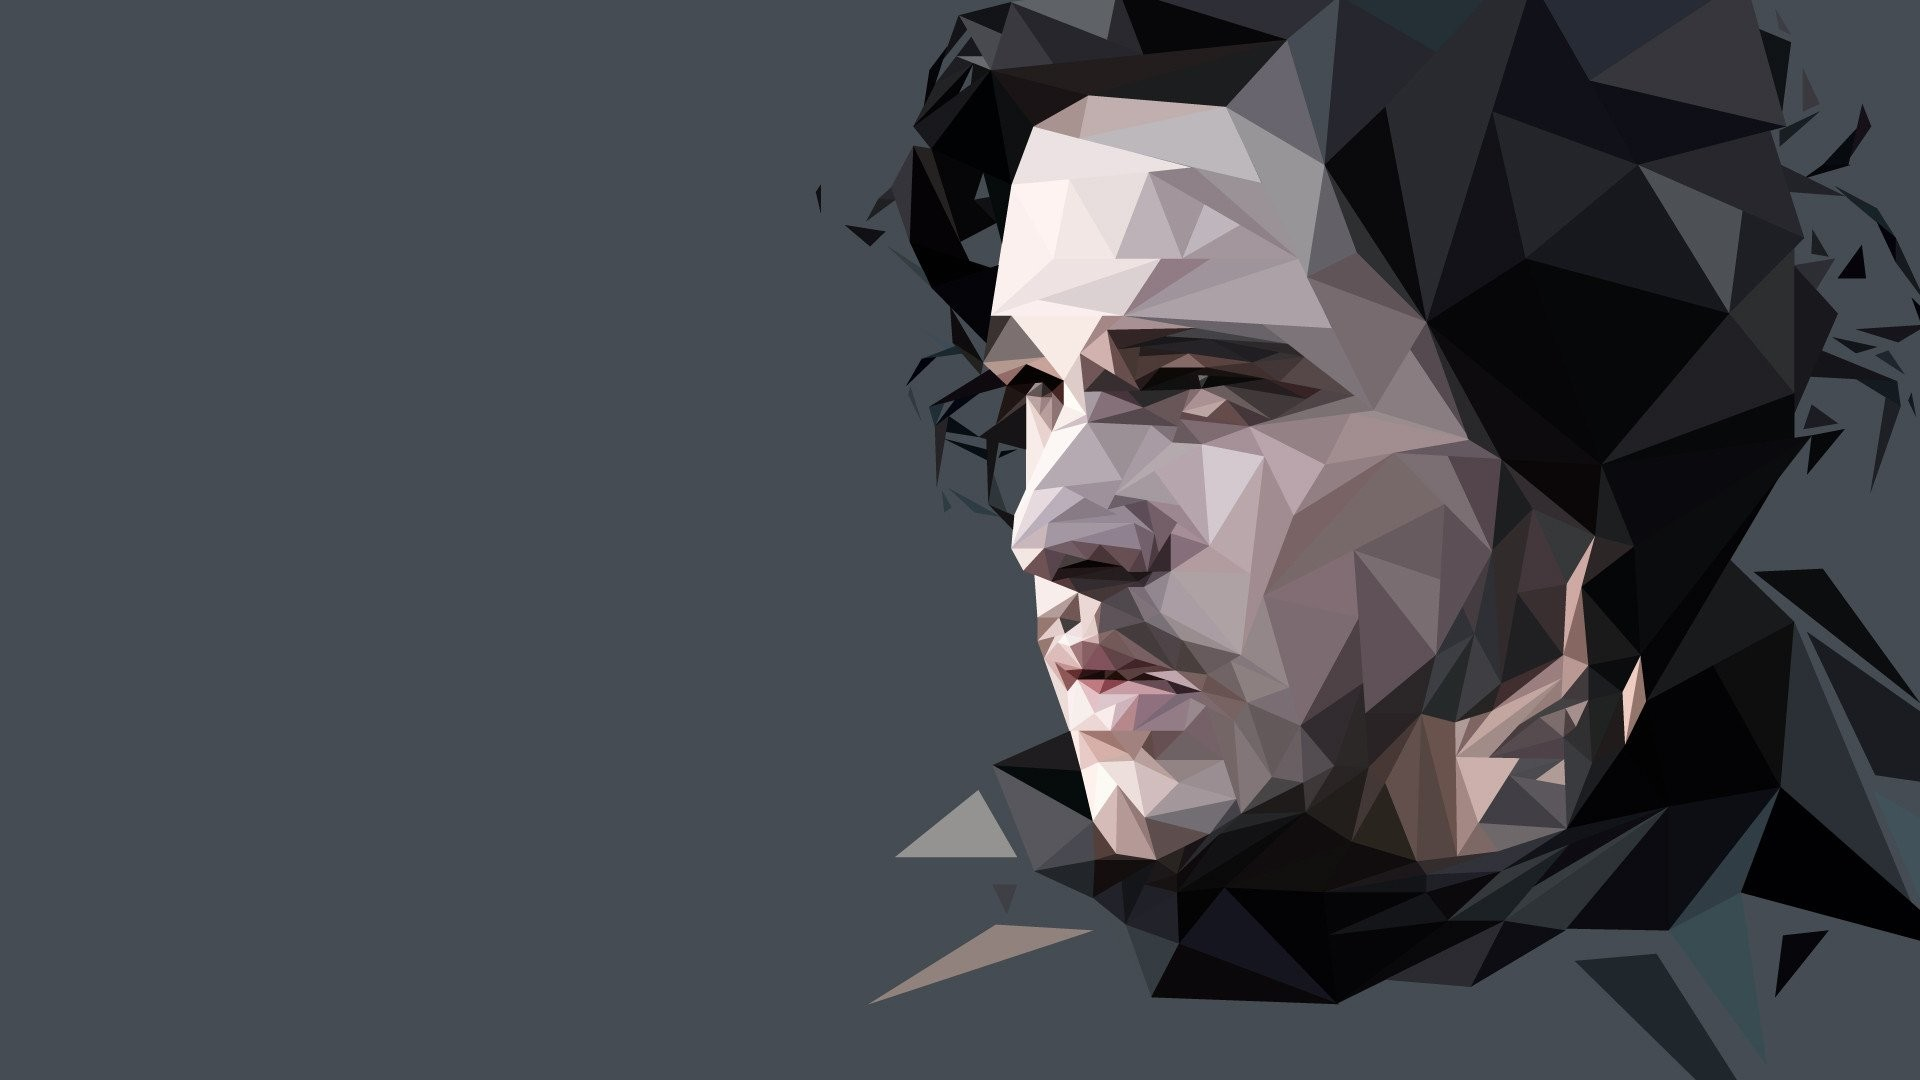 1920x1080 Kit Harington as Jon Snow Wallpapers | HD Wallpapers